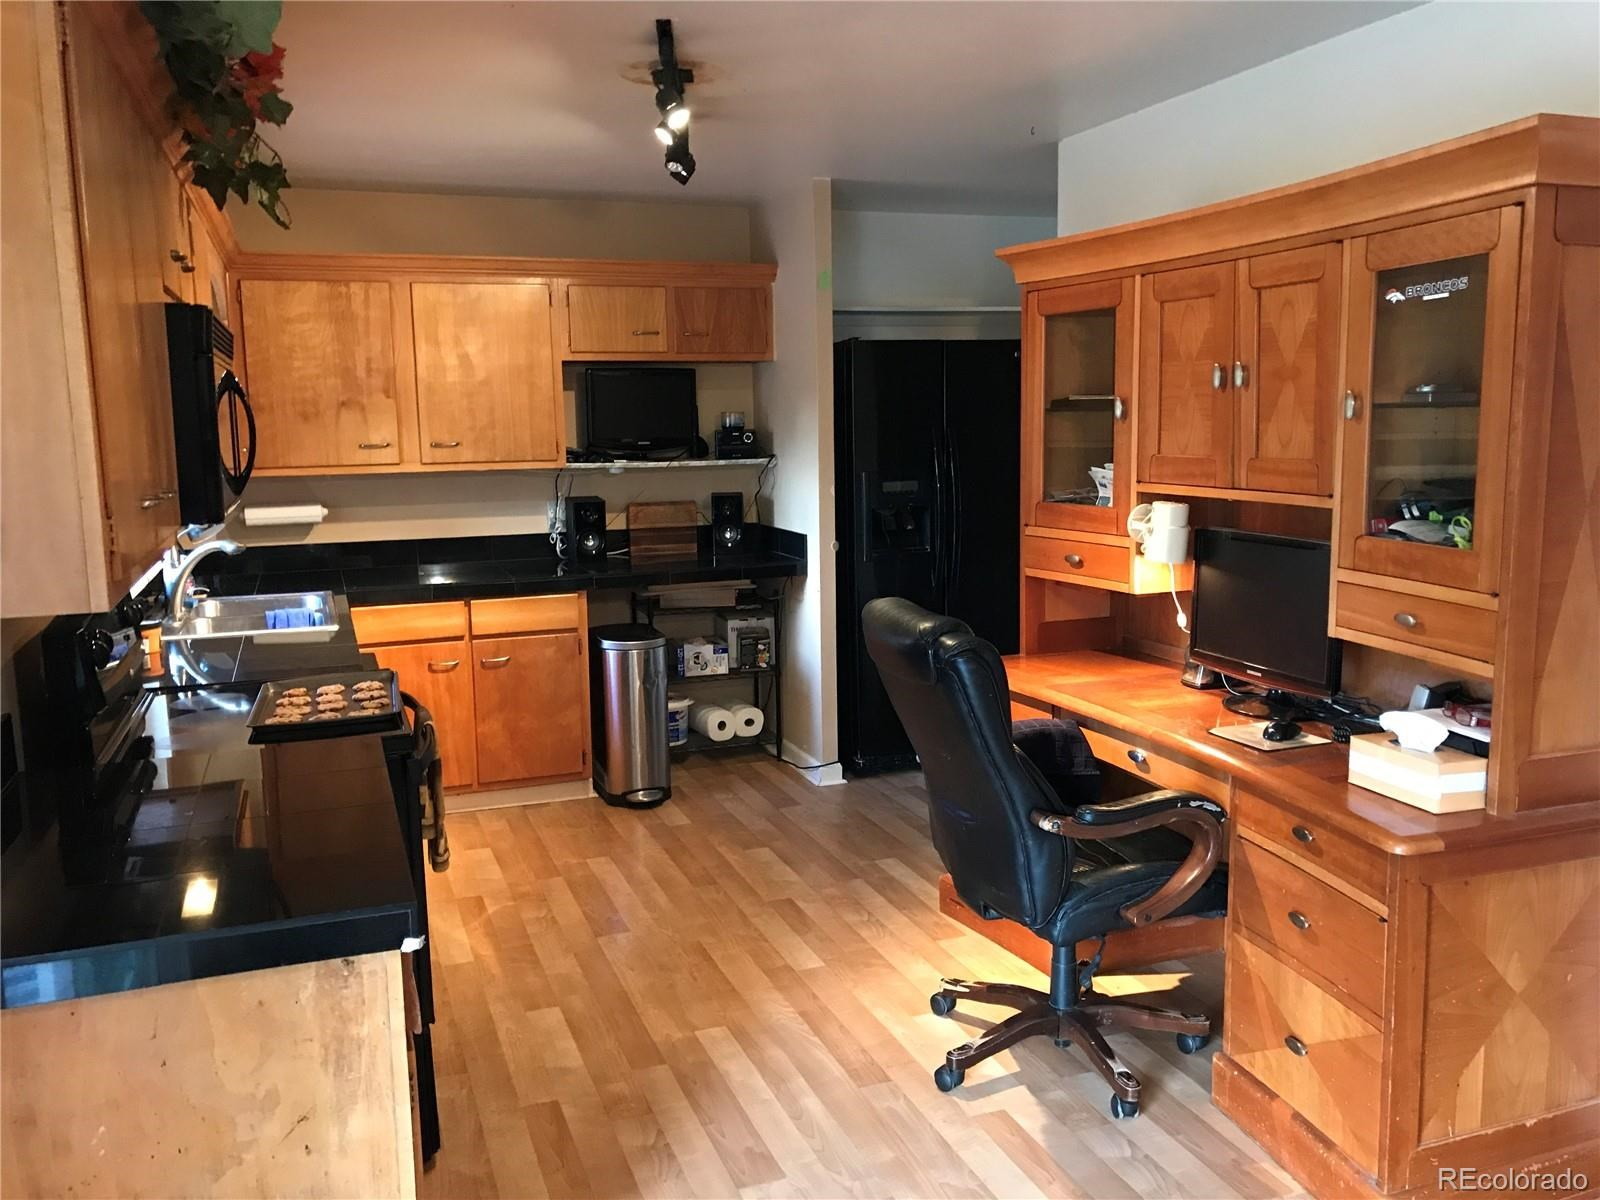 MLS# 3701465 - 3 - 13467 W 22nd Place, Golden, CO 80401